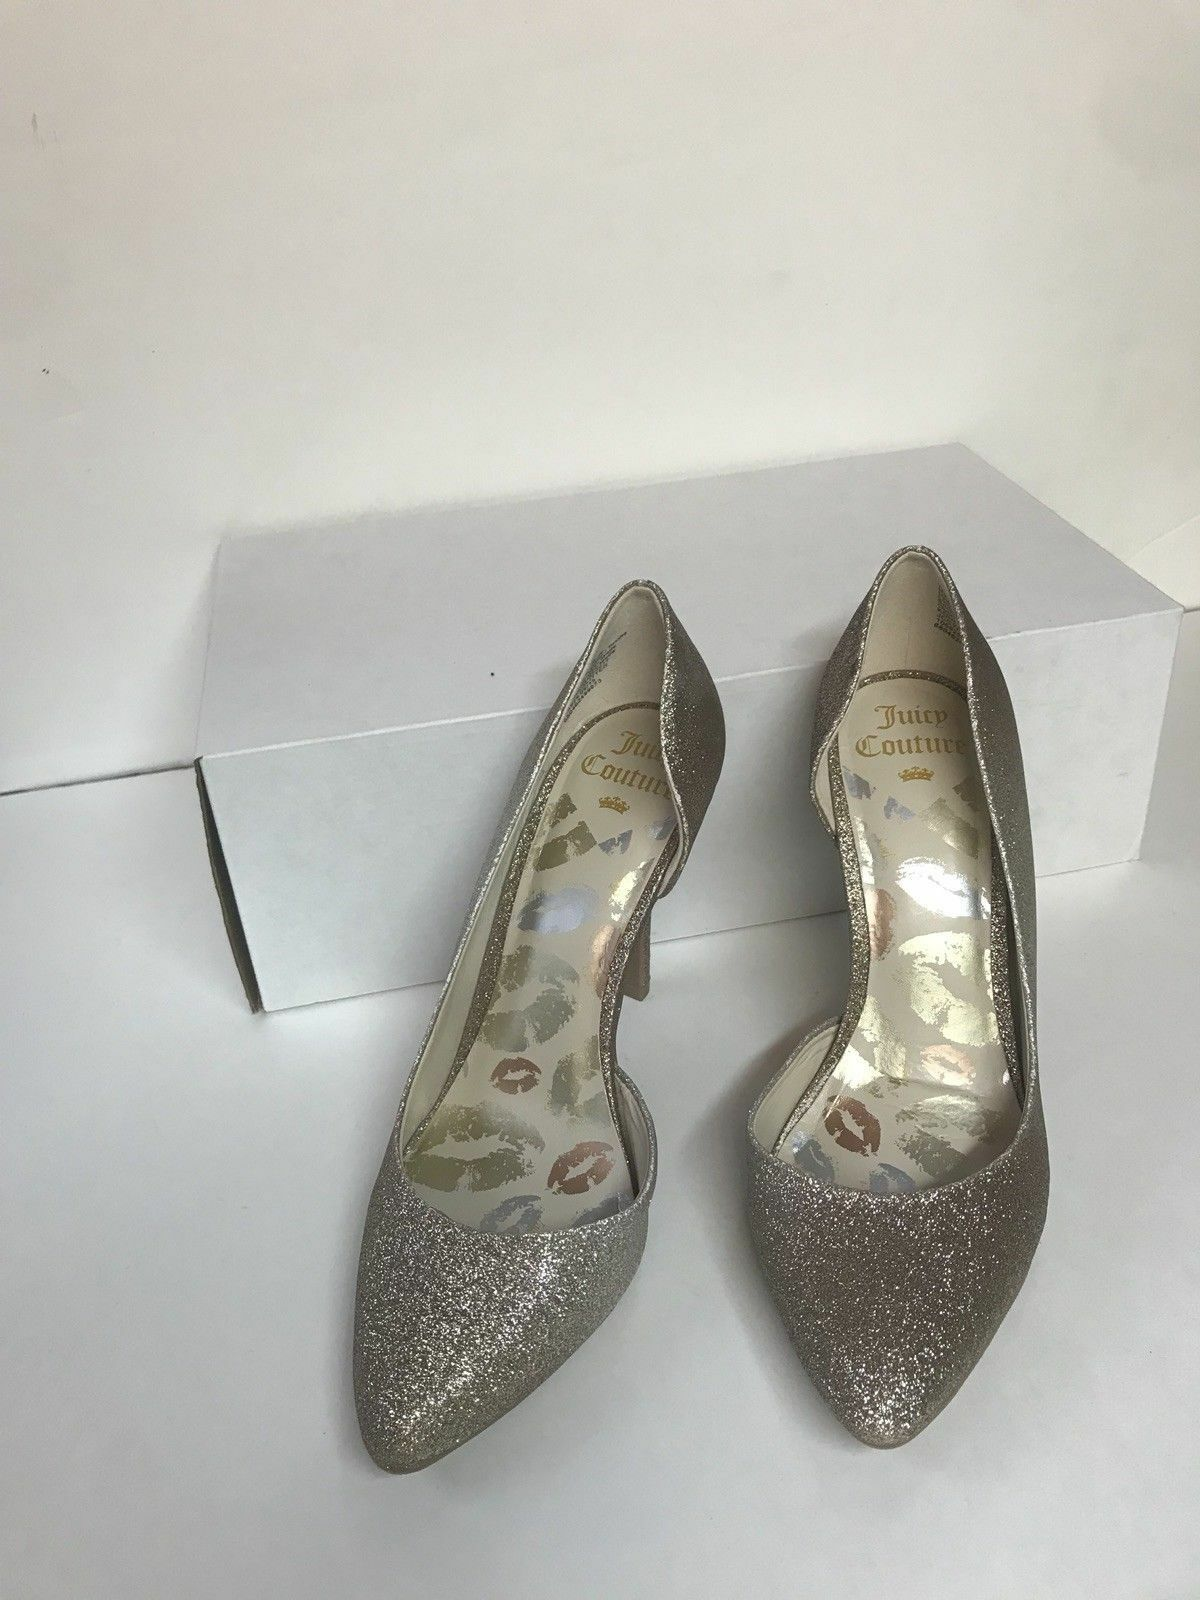 NEW JUICY COUTURE Cyra Glitter gold Slip On Fashion Dress Heels Women's Size 9M